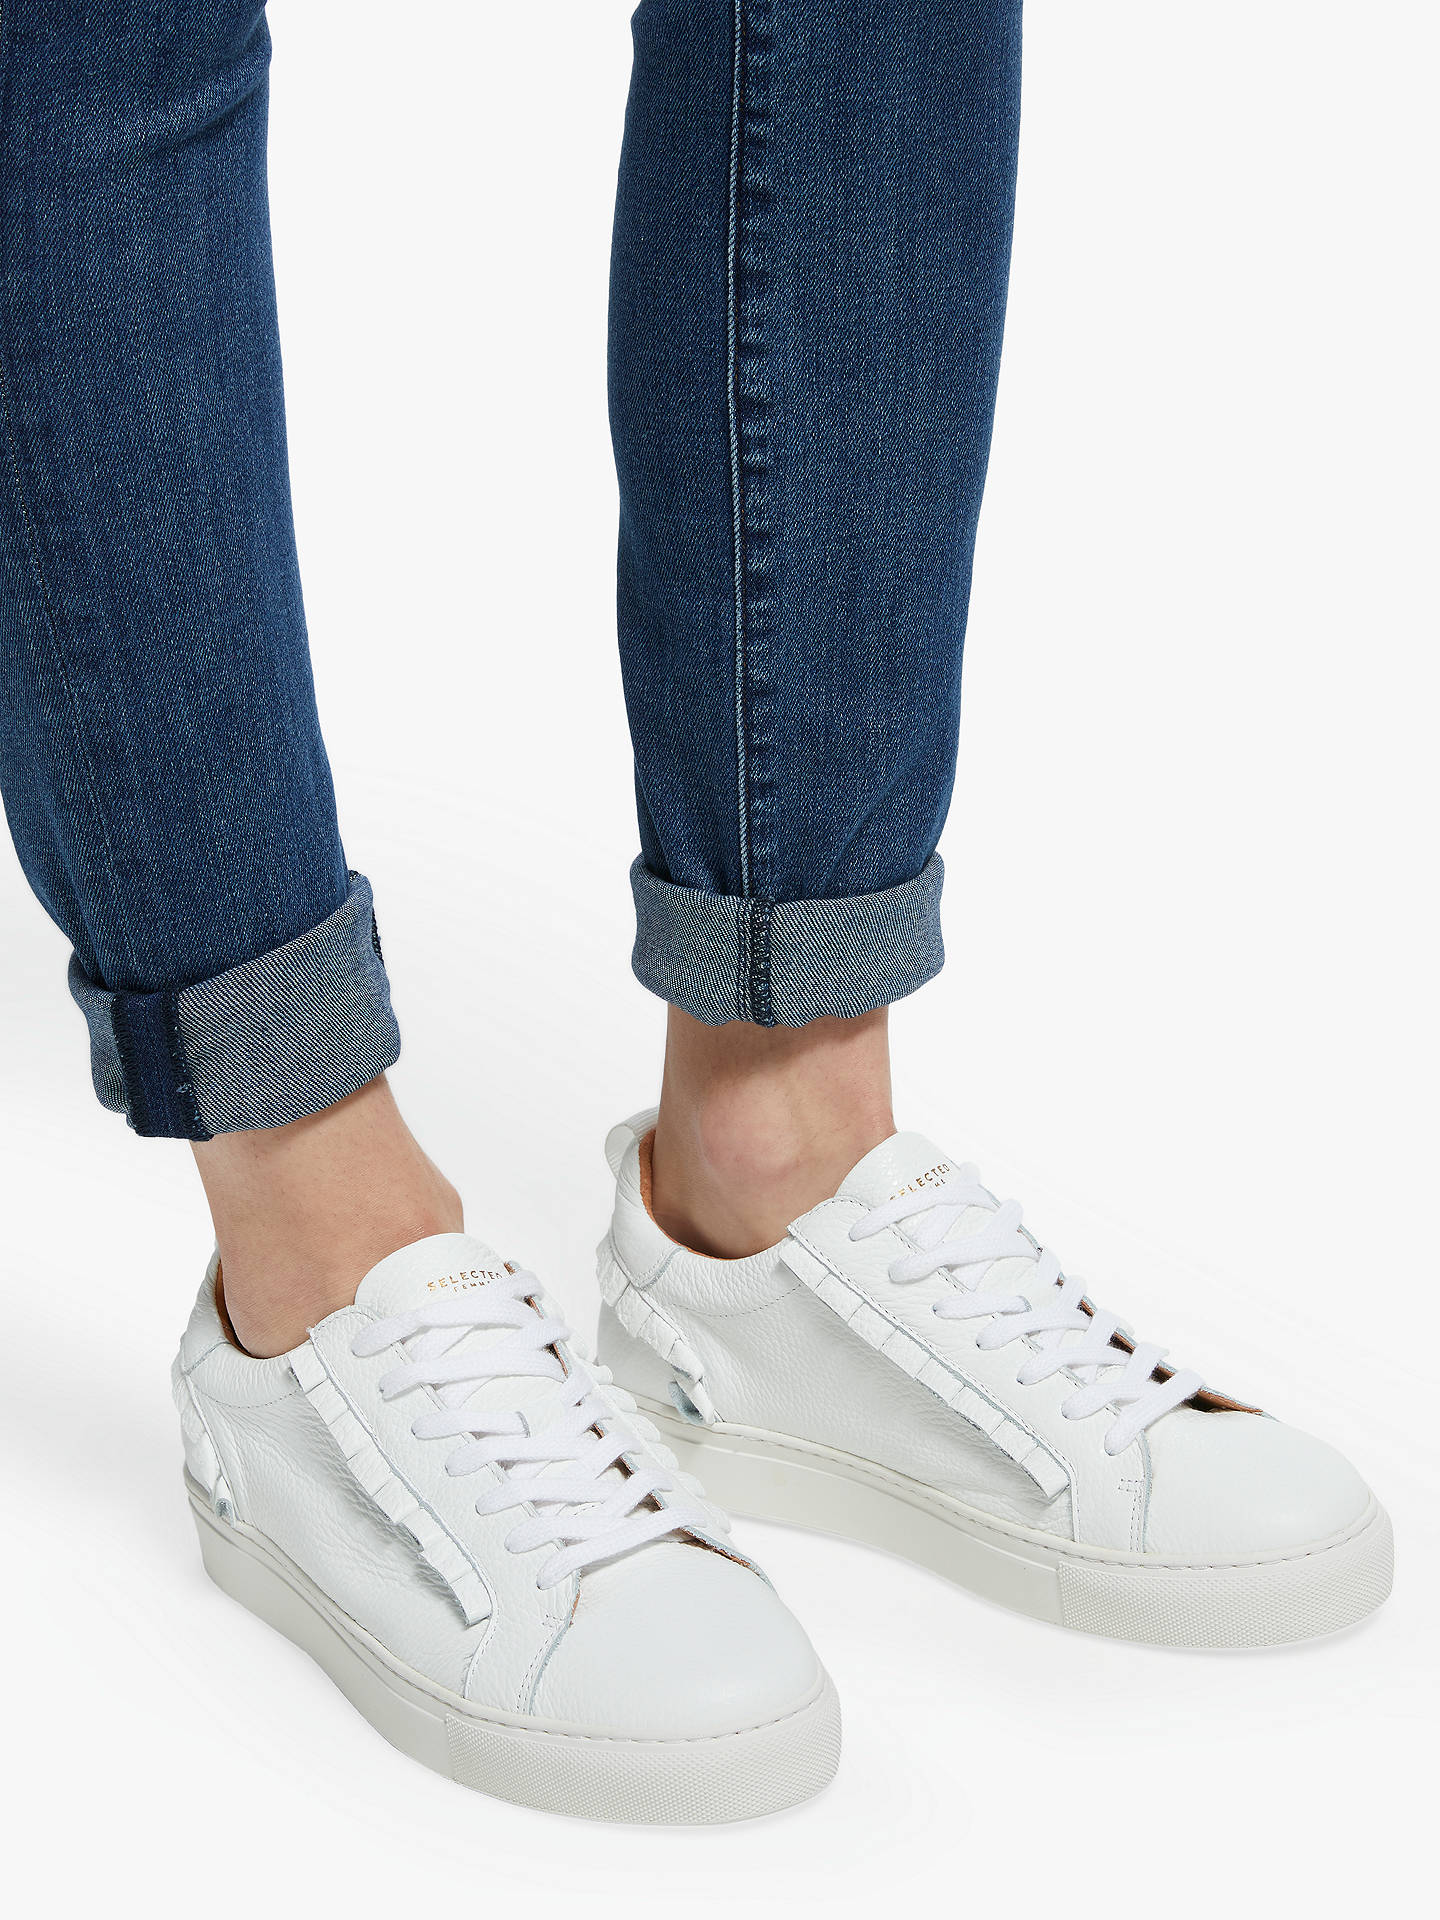 BuySelected Femme Donna Frills Leather Trainers, White, 4 Online at johnlewis.com